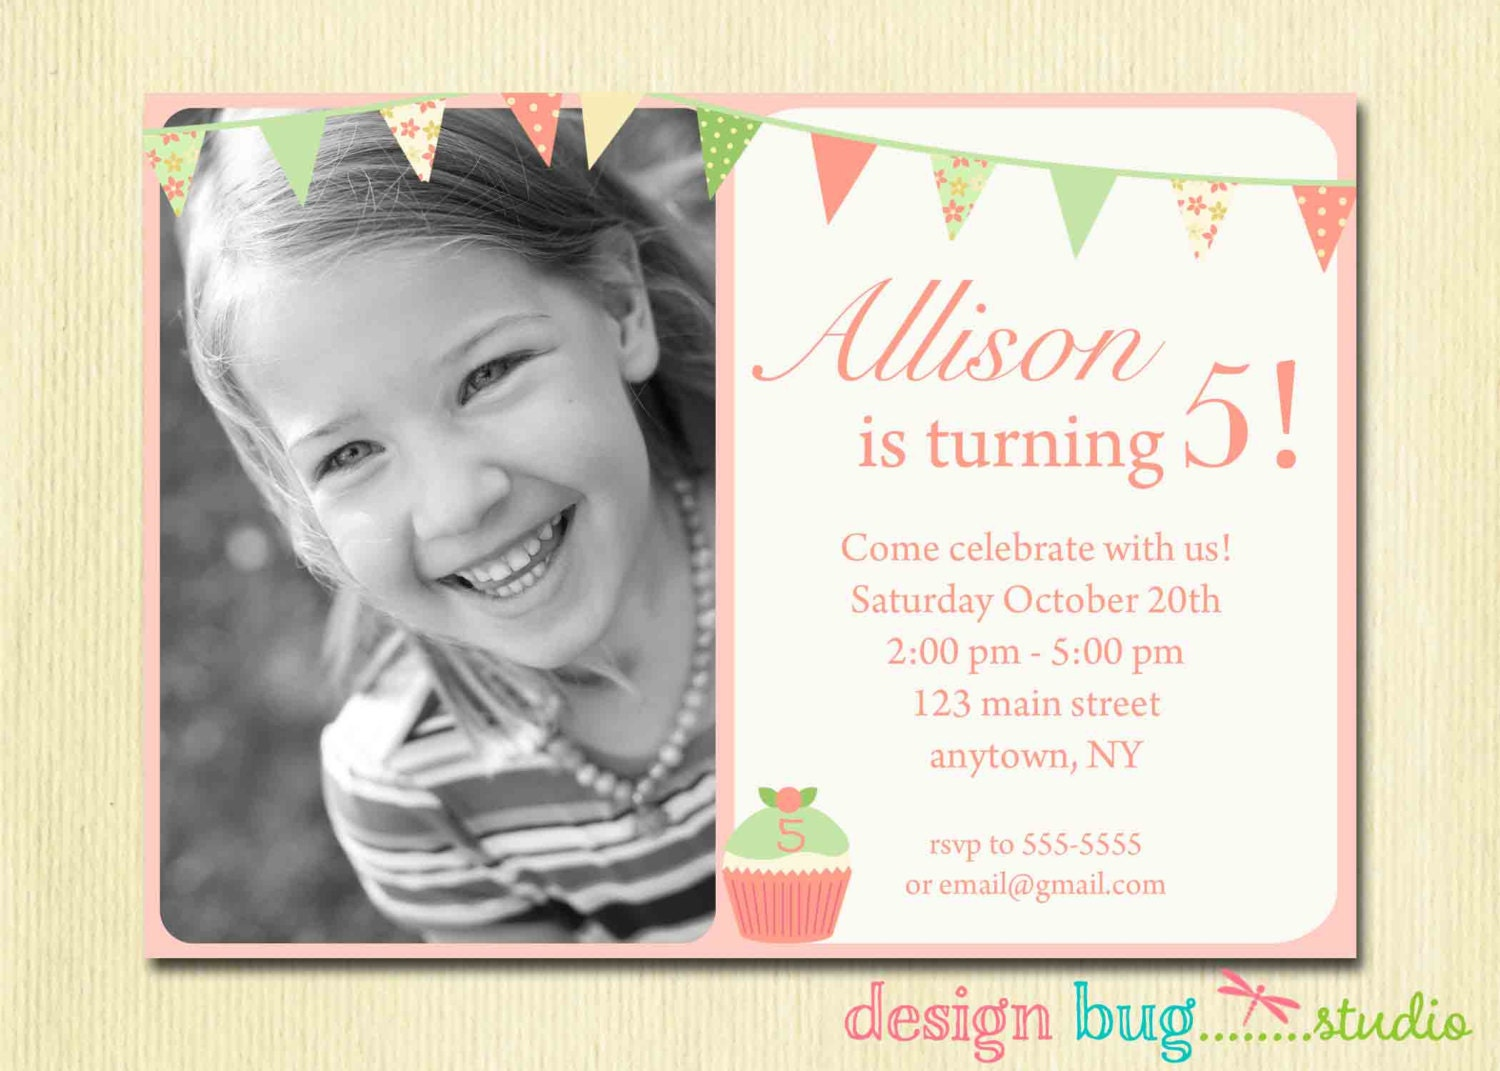 Girls Birthday Invitation Bunting cupcake DIY Photo | Etsy